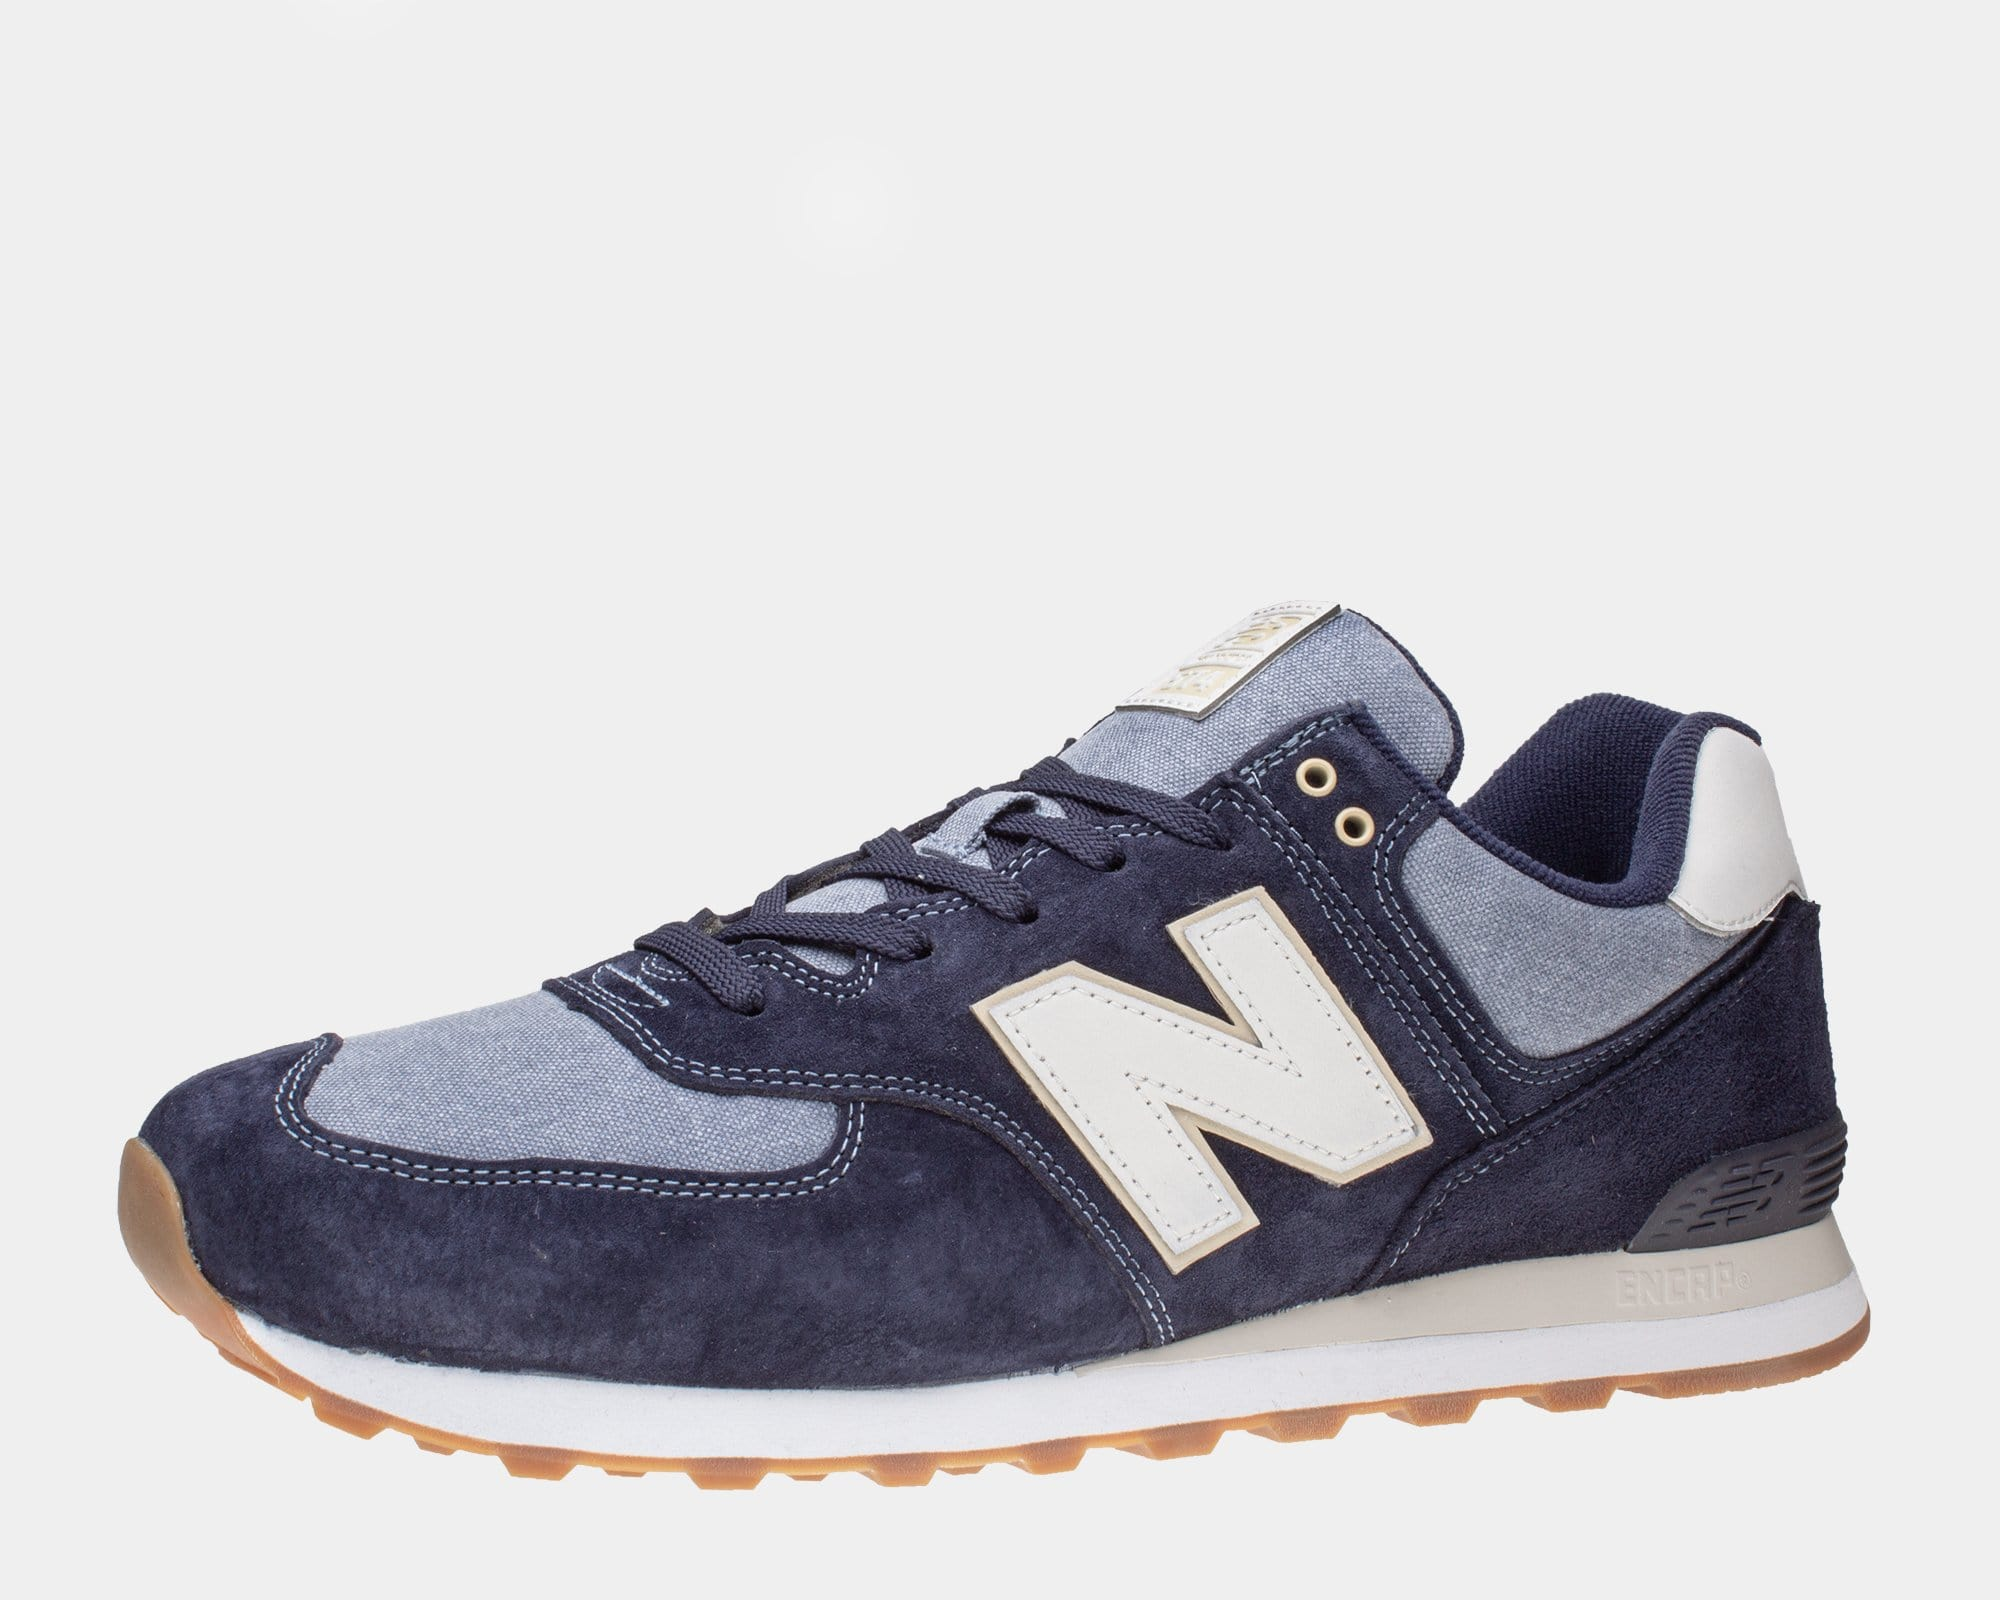 New Balance 574 Sneakers Mens Large Sizes